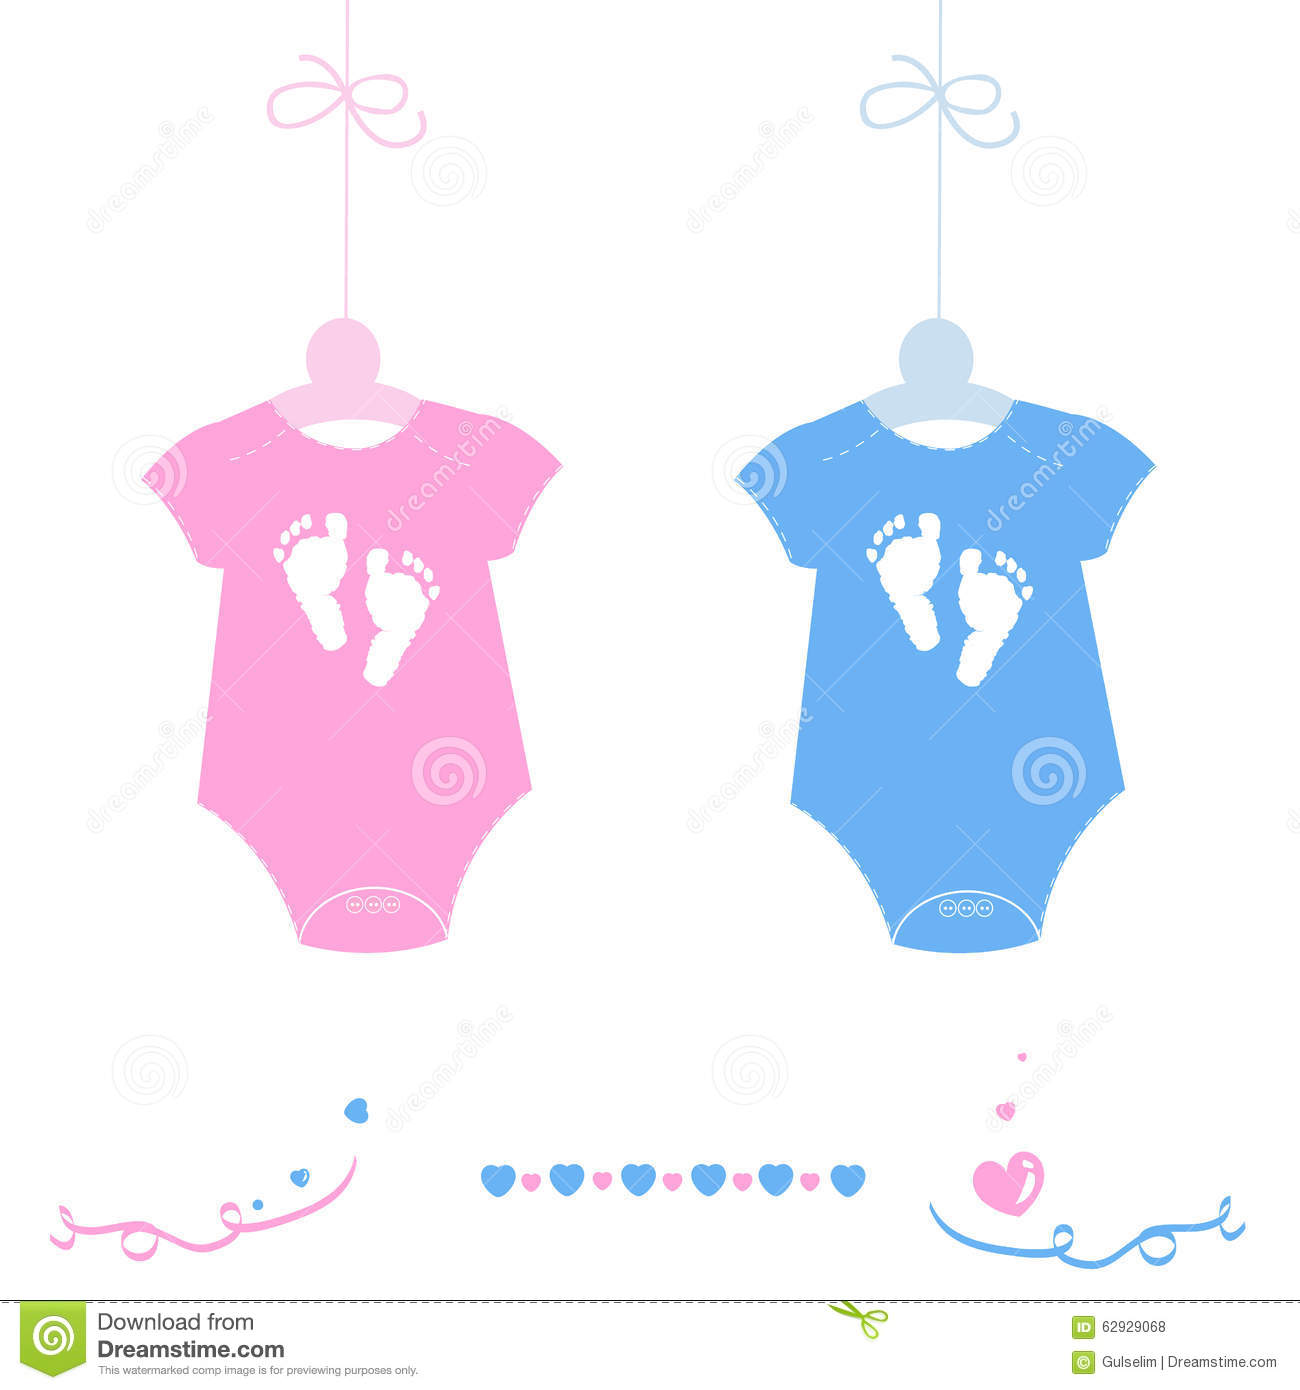 twin baby girl and boy baby body with feet prints arrival greeting